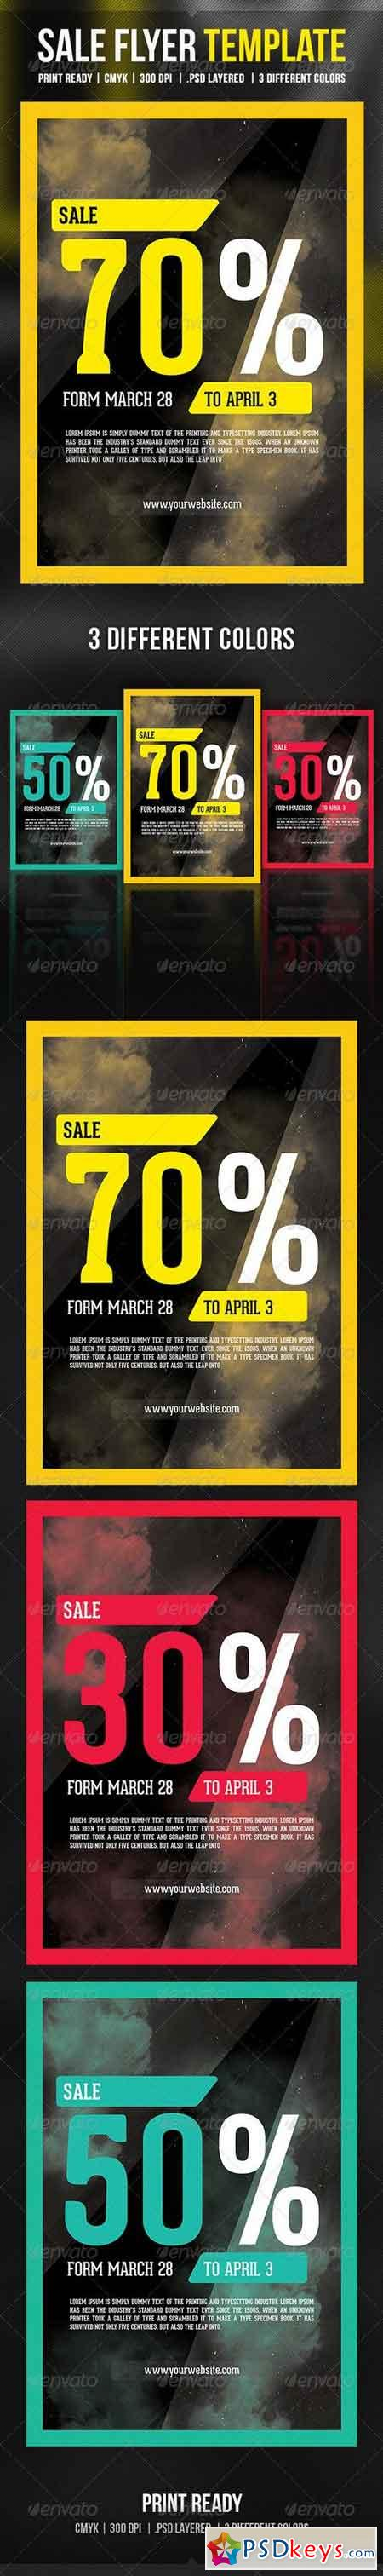 Sale Flyer Template 6906898